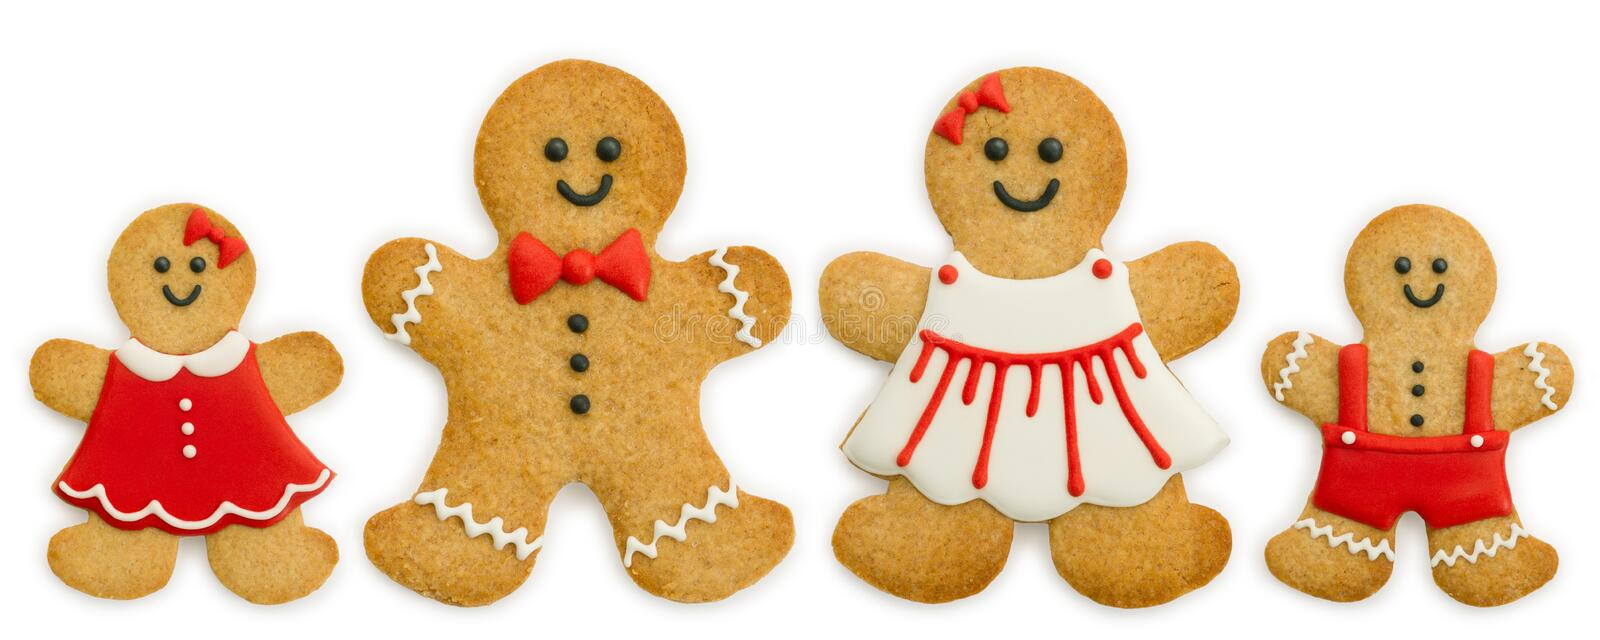 Gingerbread family. Against a white background royalty free stock photo